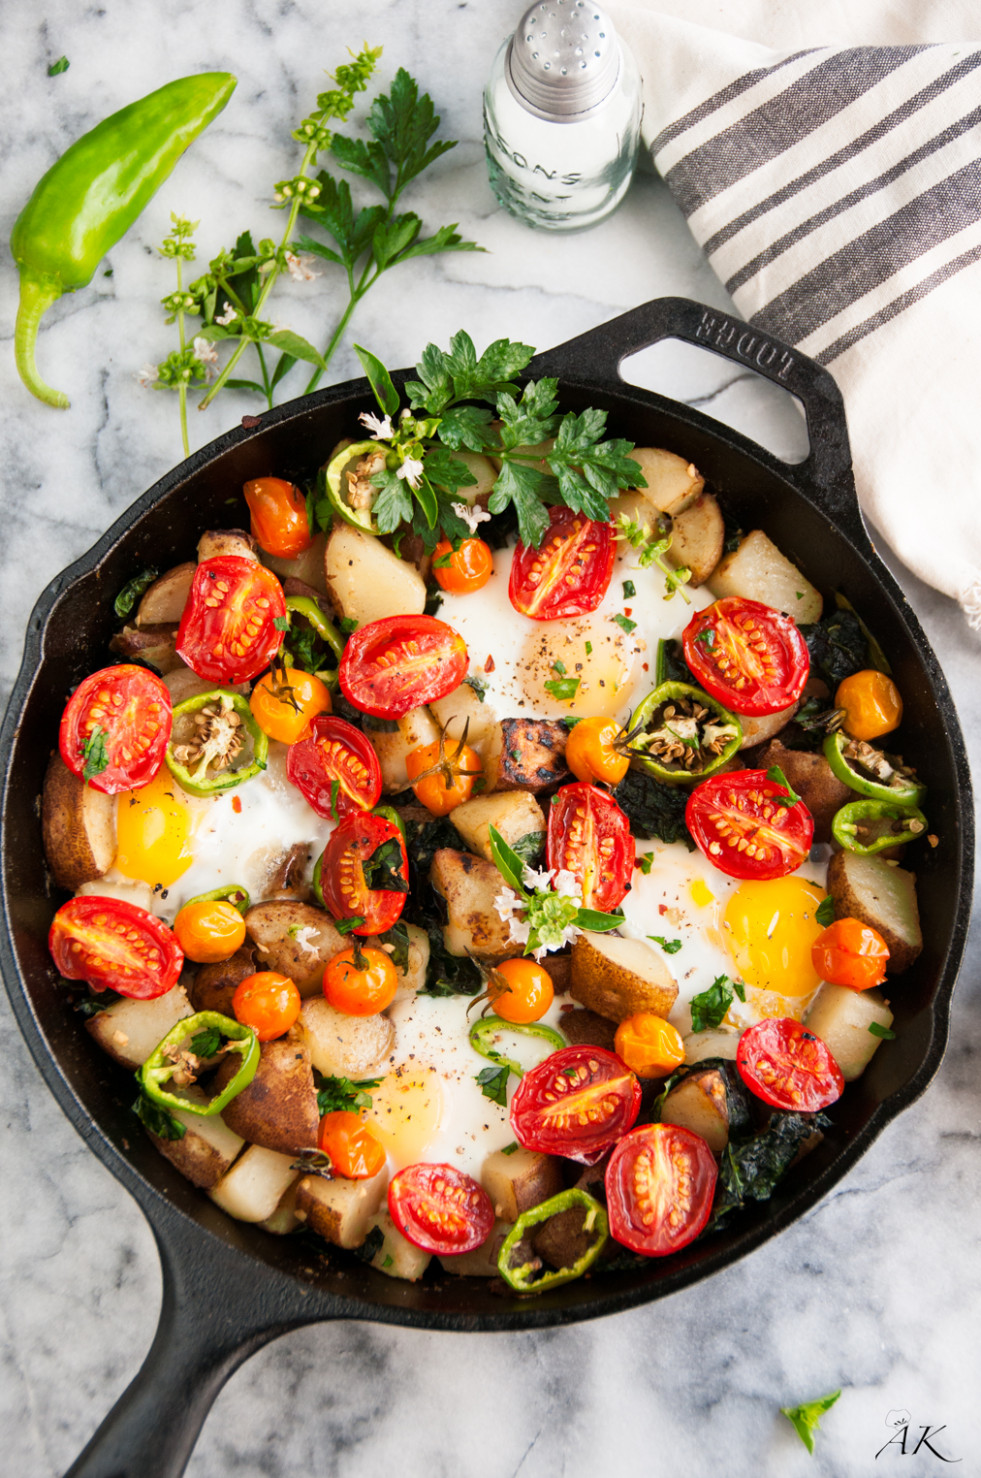 Skillet Eggs And Potato Garden Breakfast - Aberdeen's Kitchen - Egg Recipes Dinner Healthy